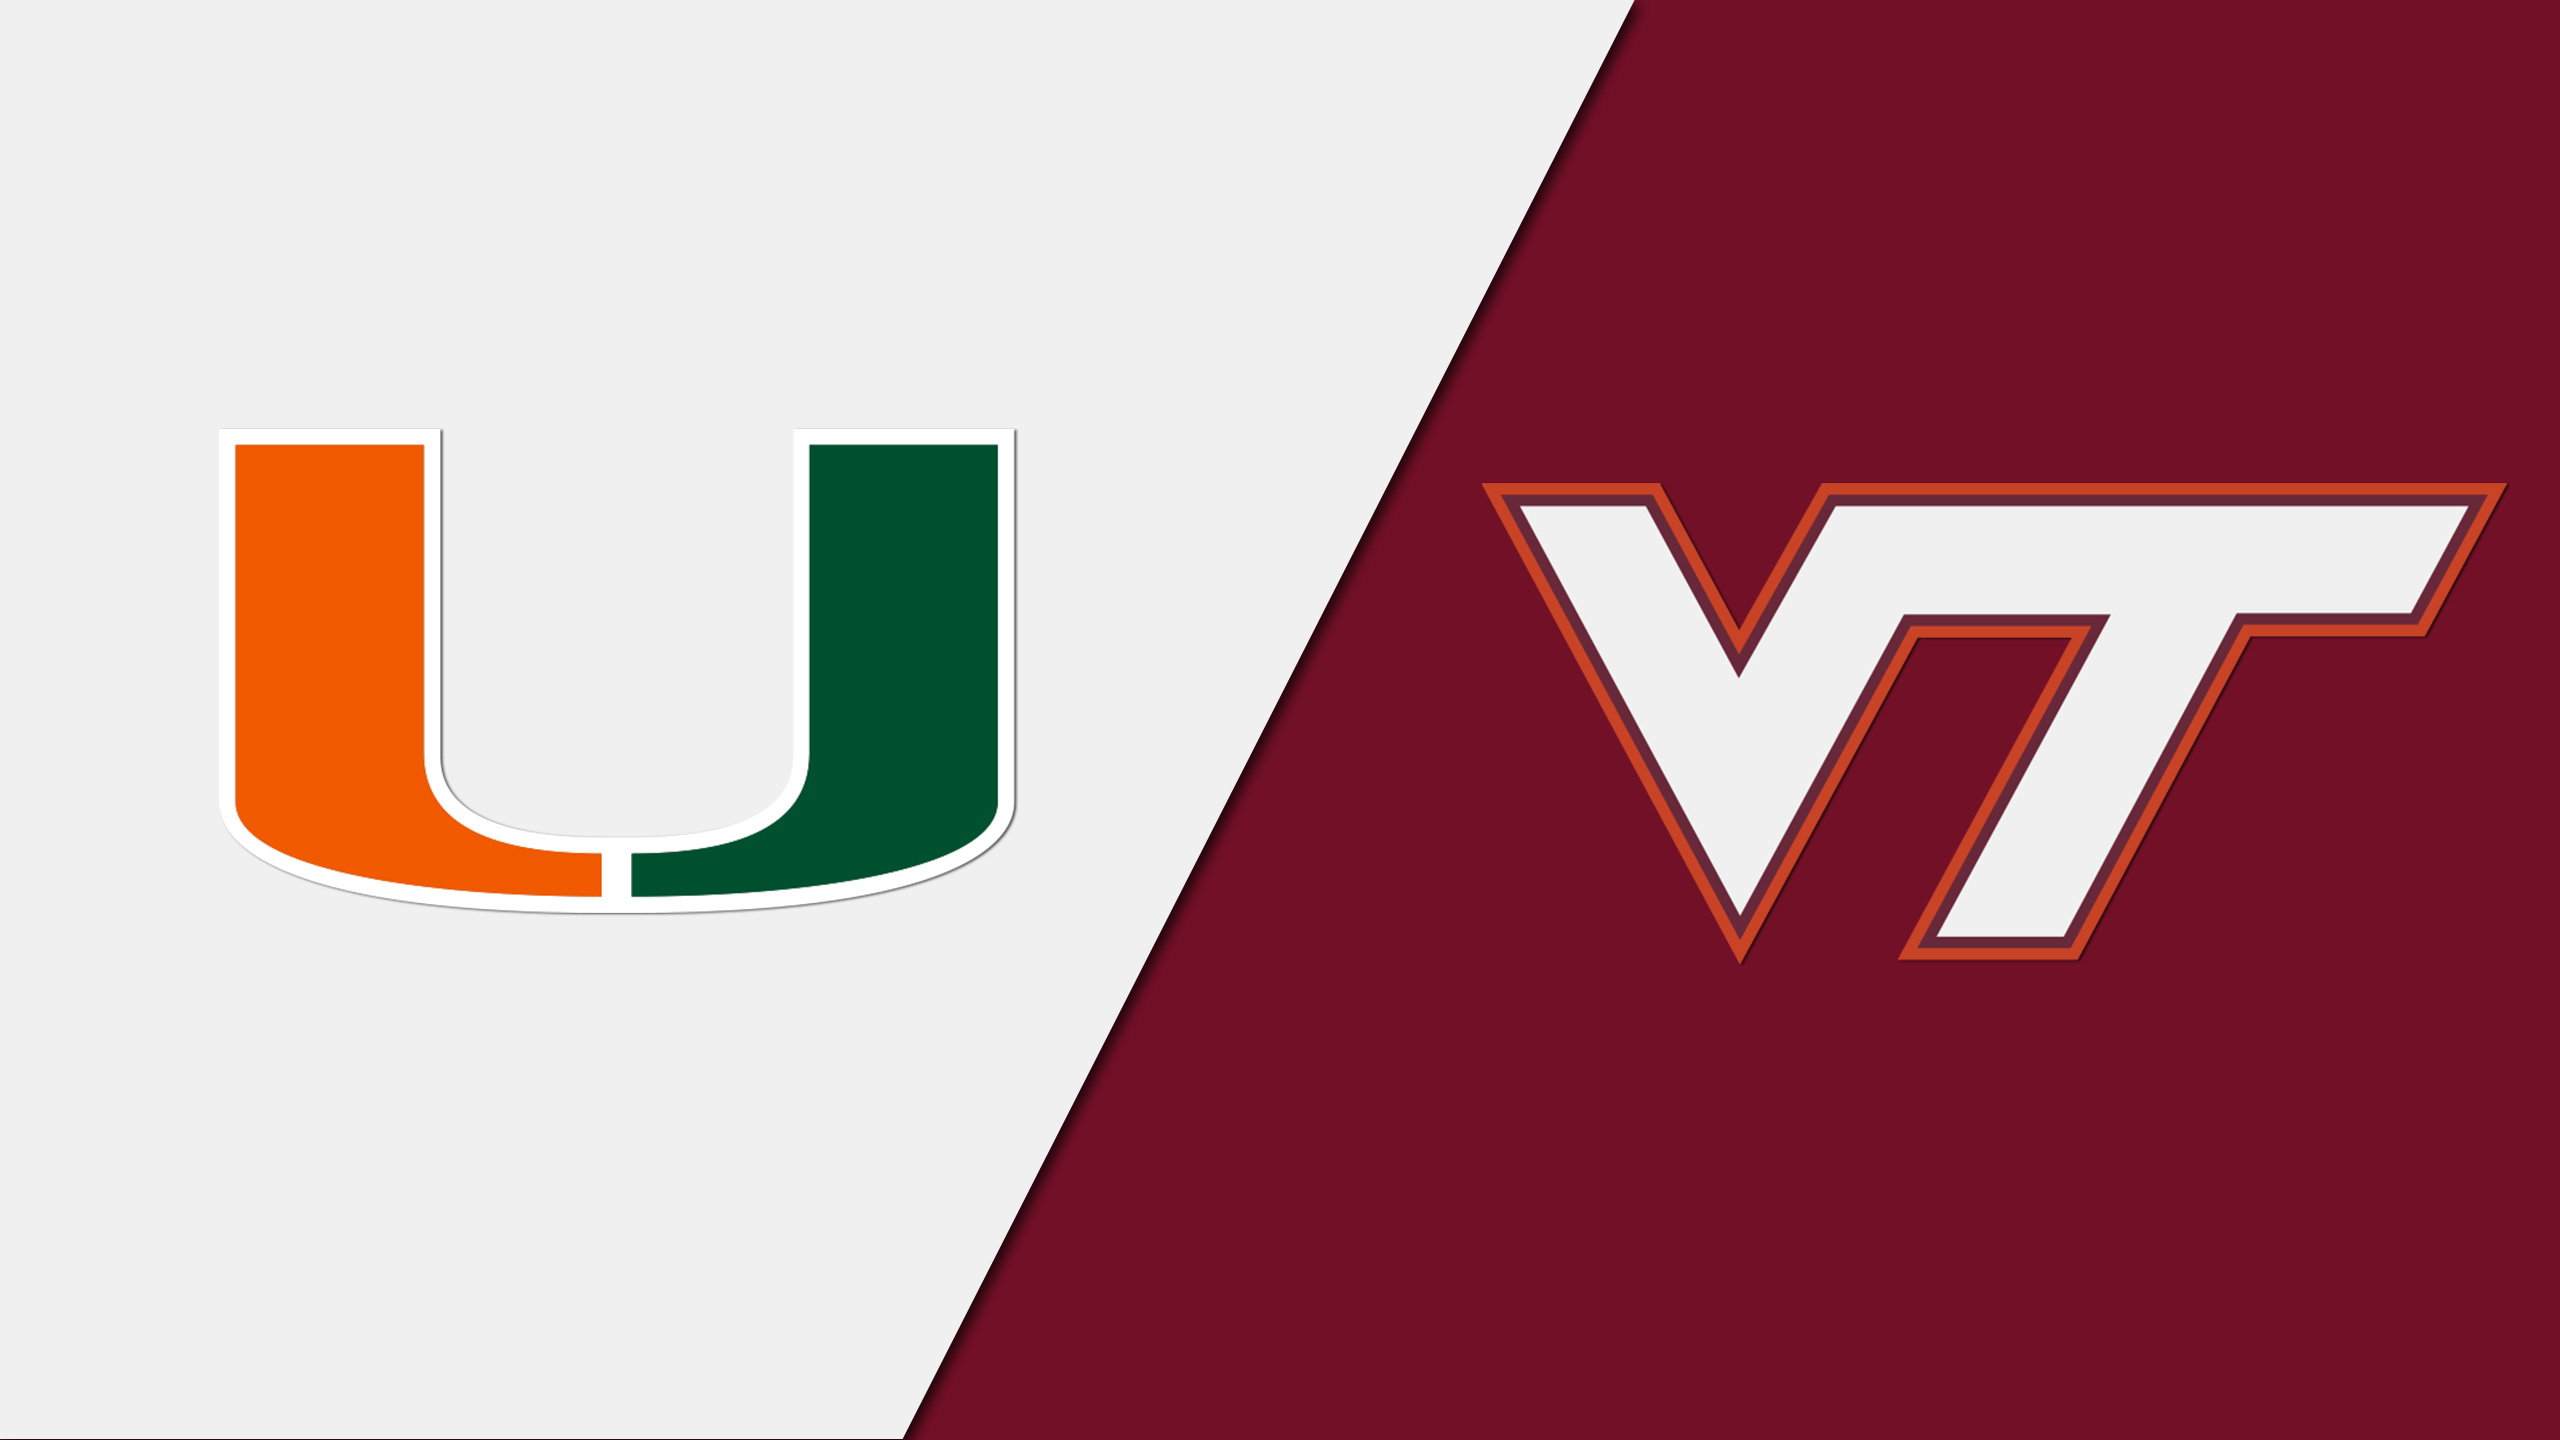 #14 Miami vs. Virginia Tech